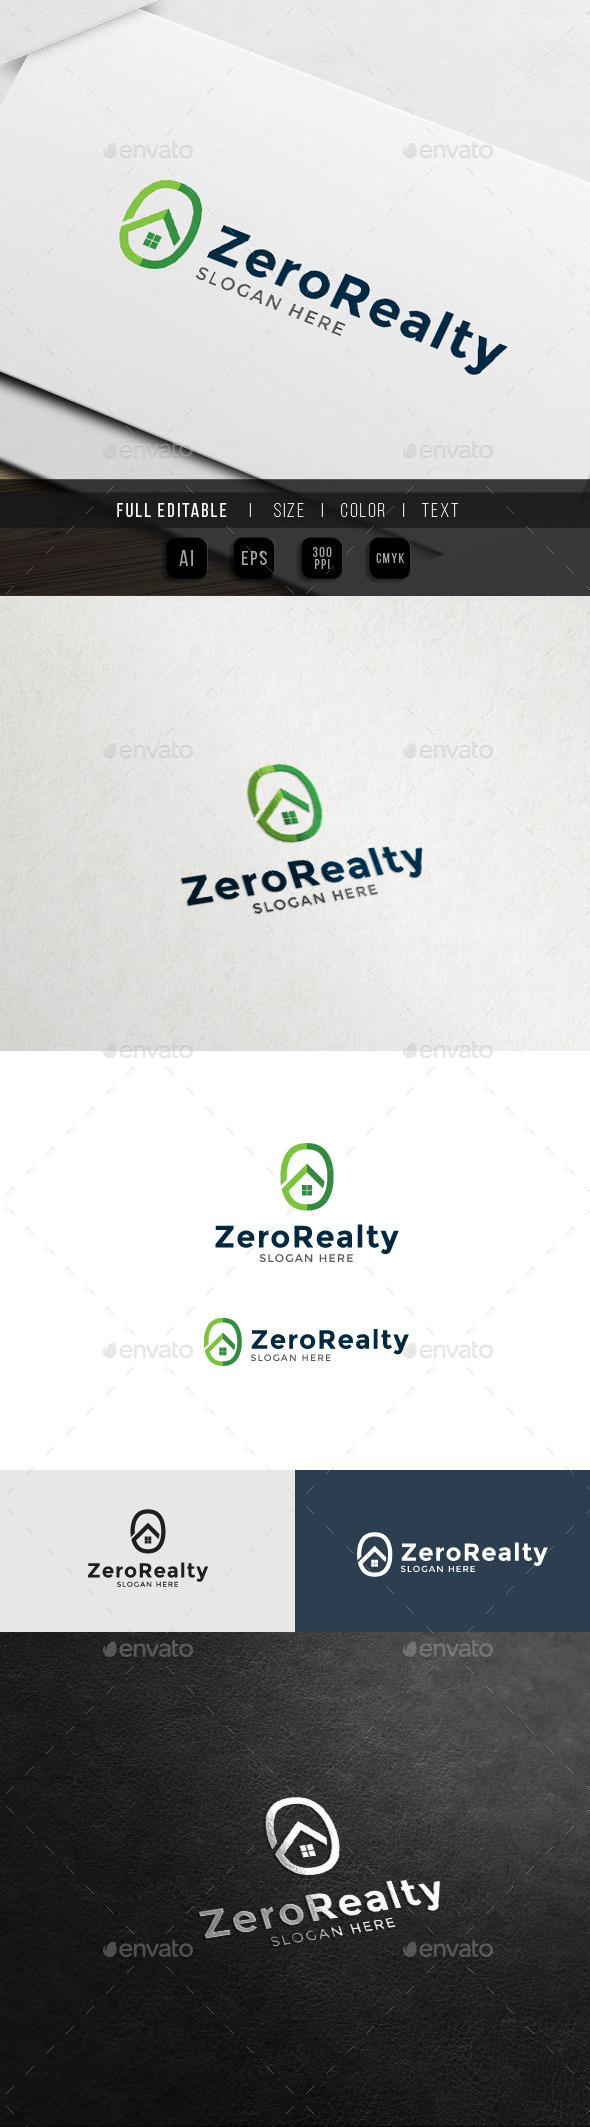 Zero Property 0 Real estate